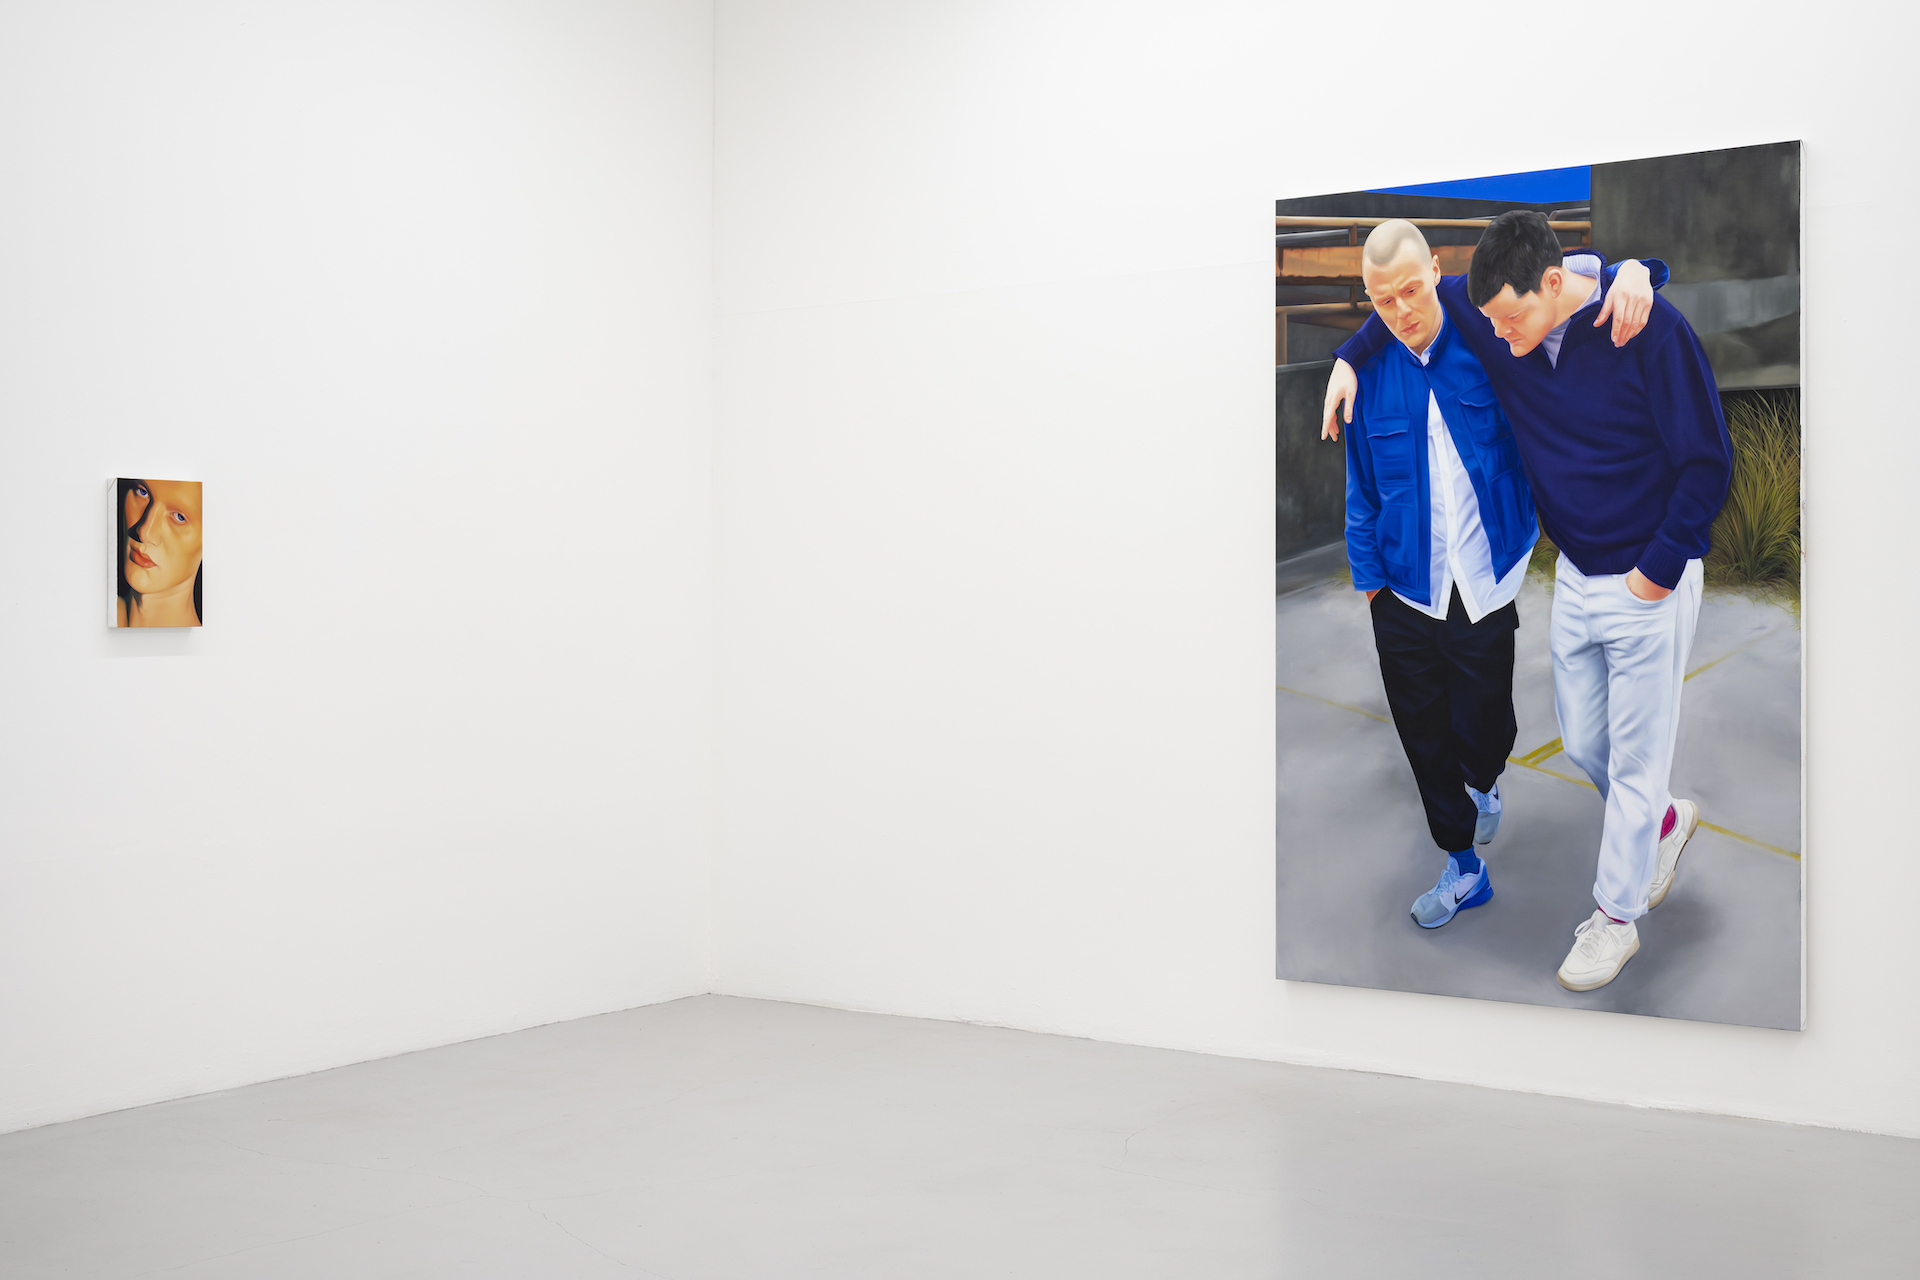 Installation view: Christopher Hartmann: In and out of touch, 3 June – 31 July, Hannah Barry. Courtesy of Hannah Barry